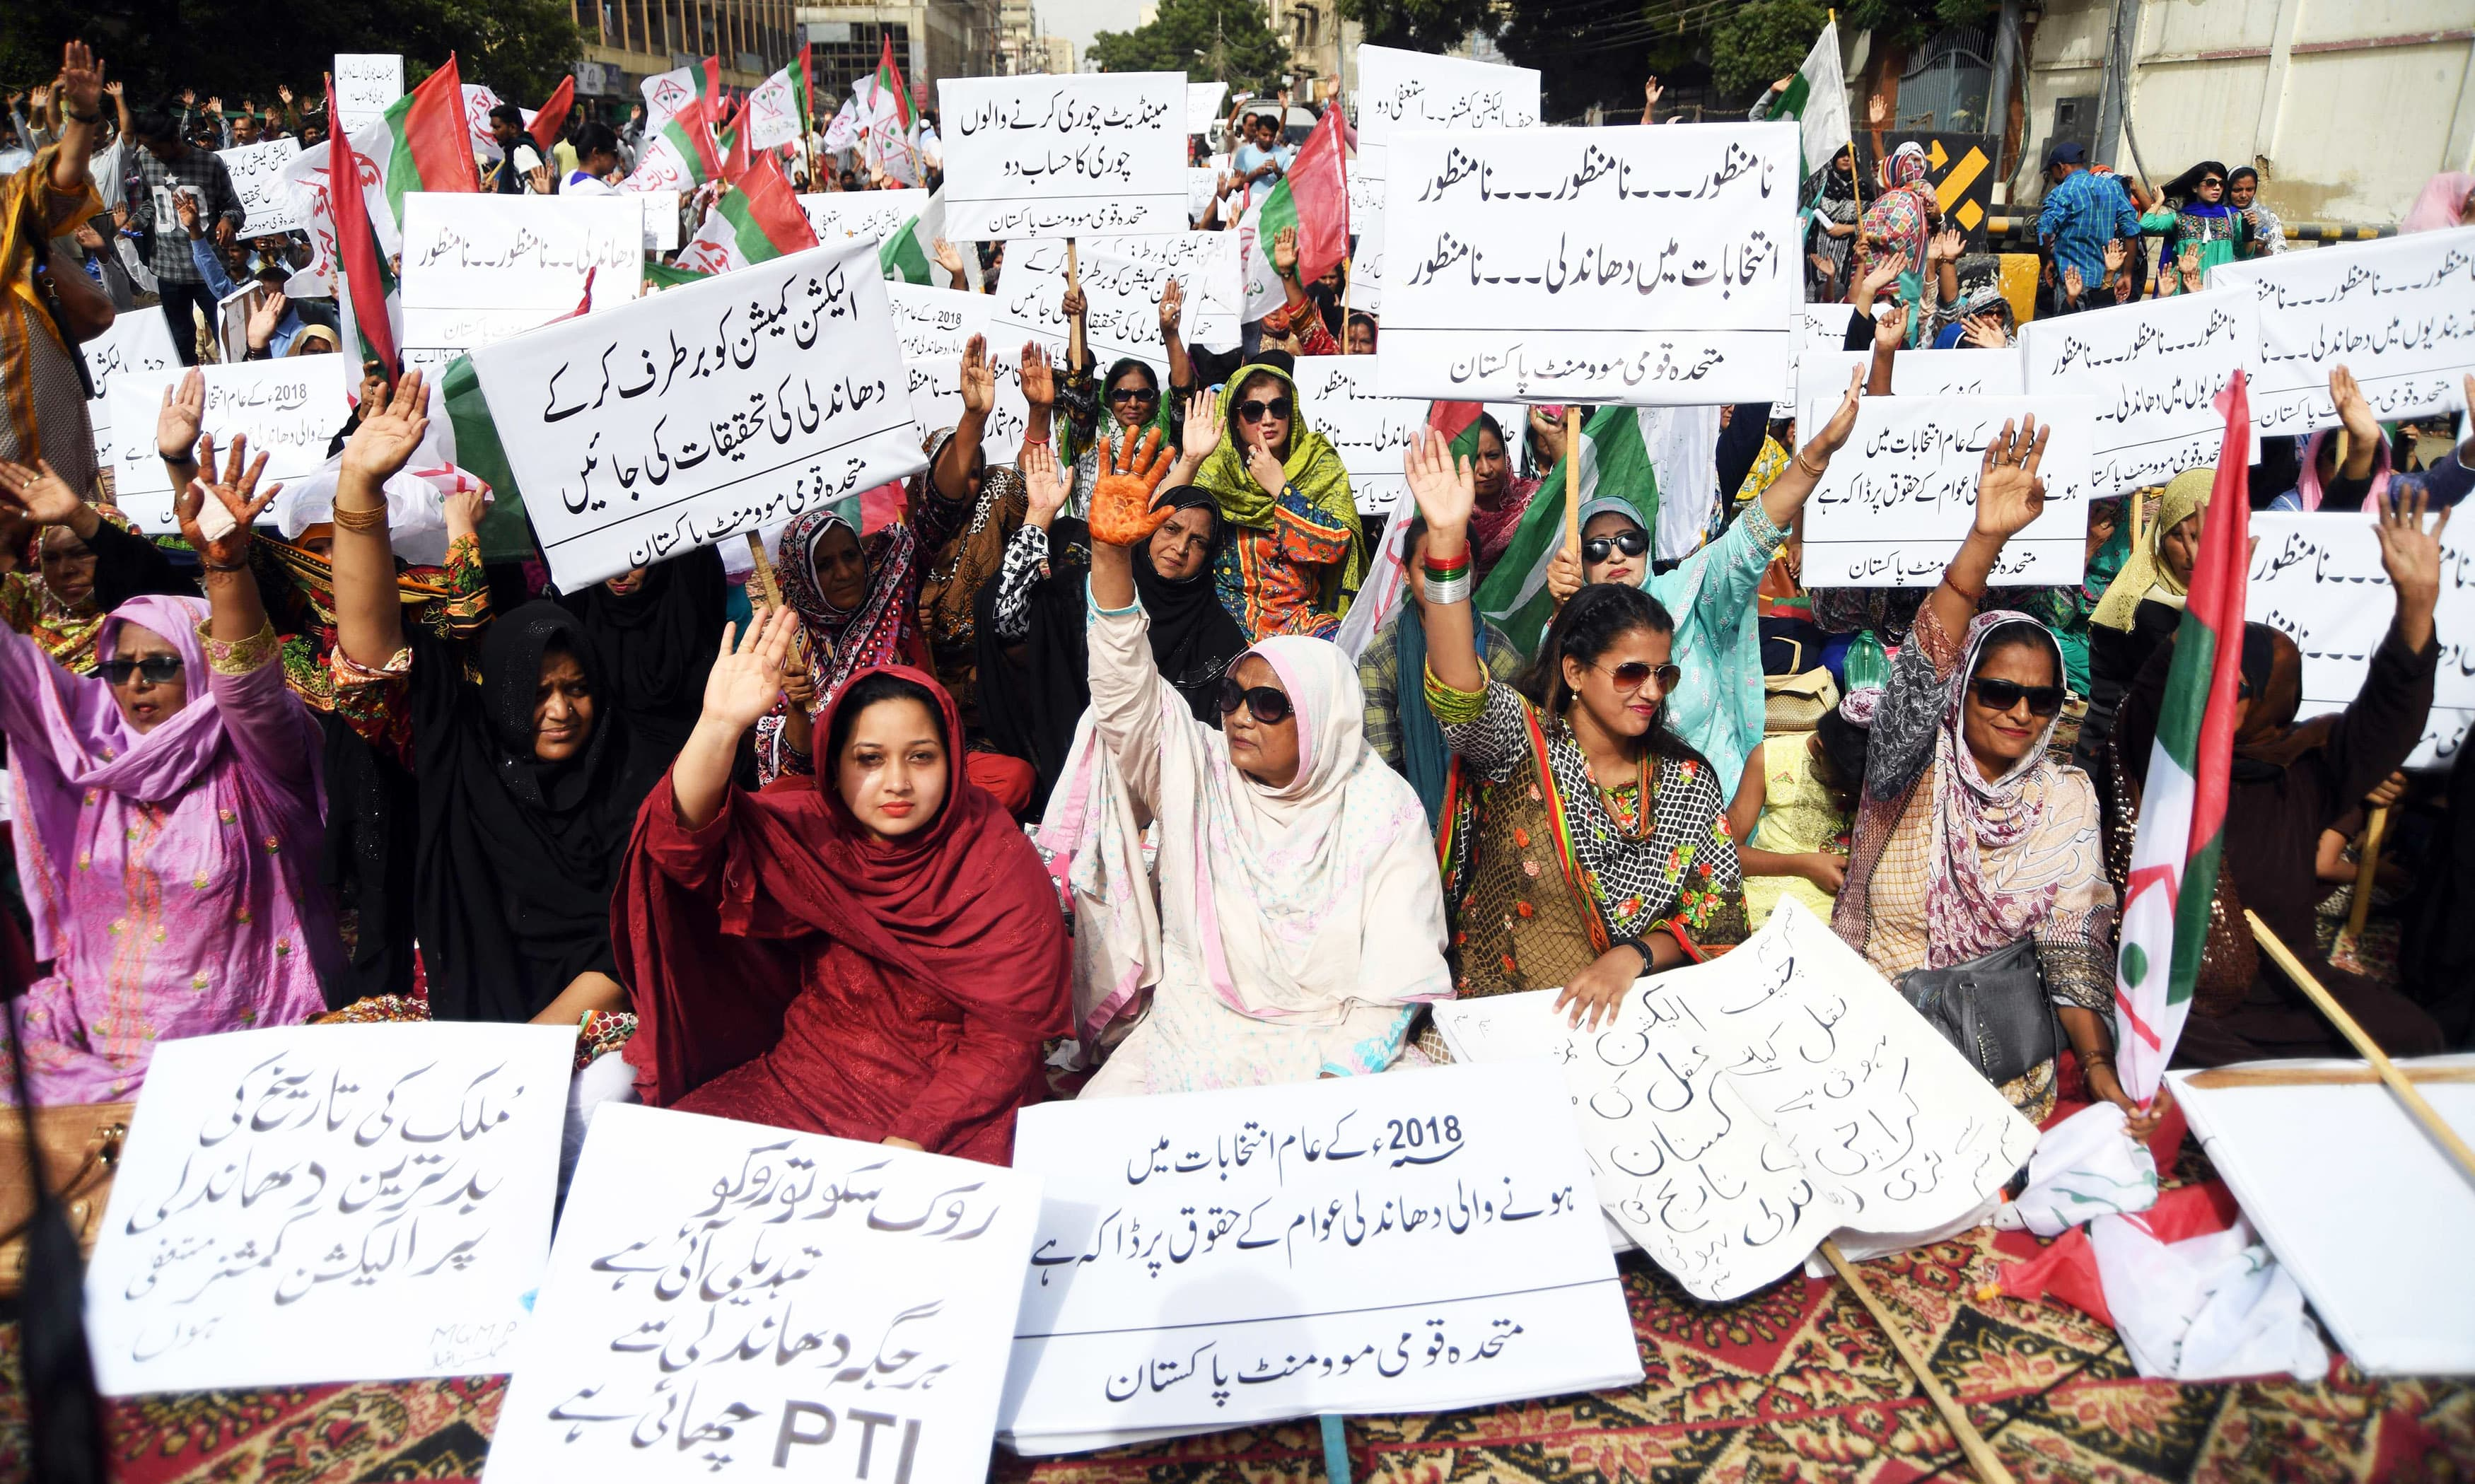 MQM supporters carry placards as they chant slogans during a protest against alleged election rigging in Karachi. —AFP